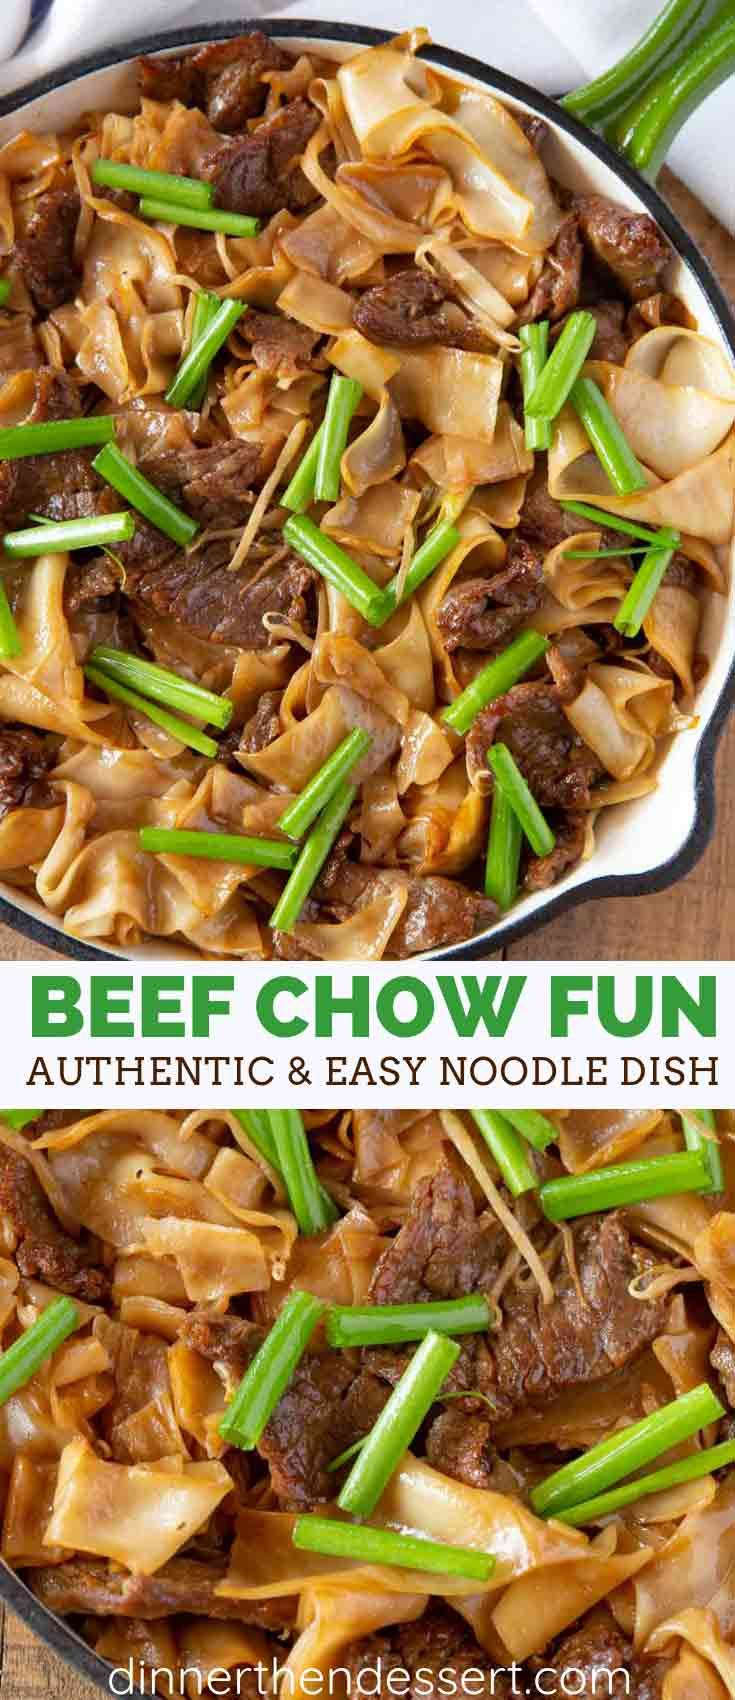 Beef chow fun is a popular chinese cantonese noodle dish